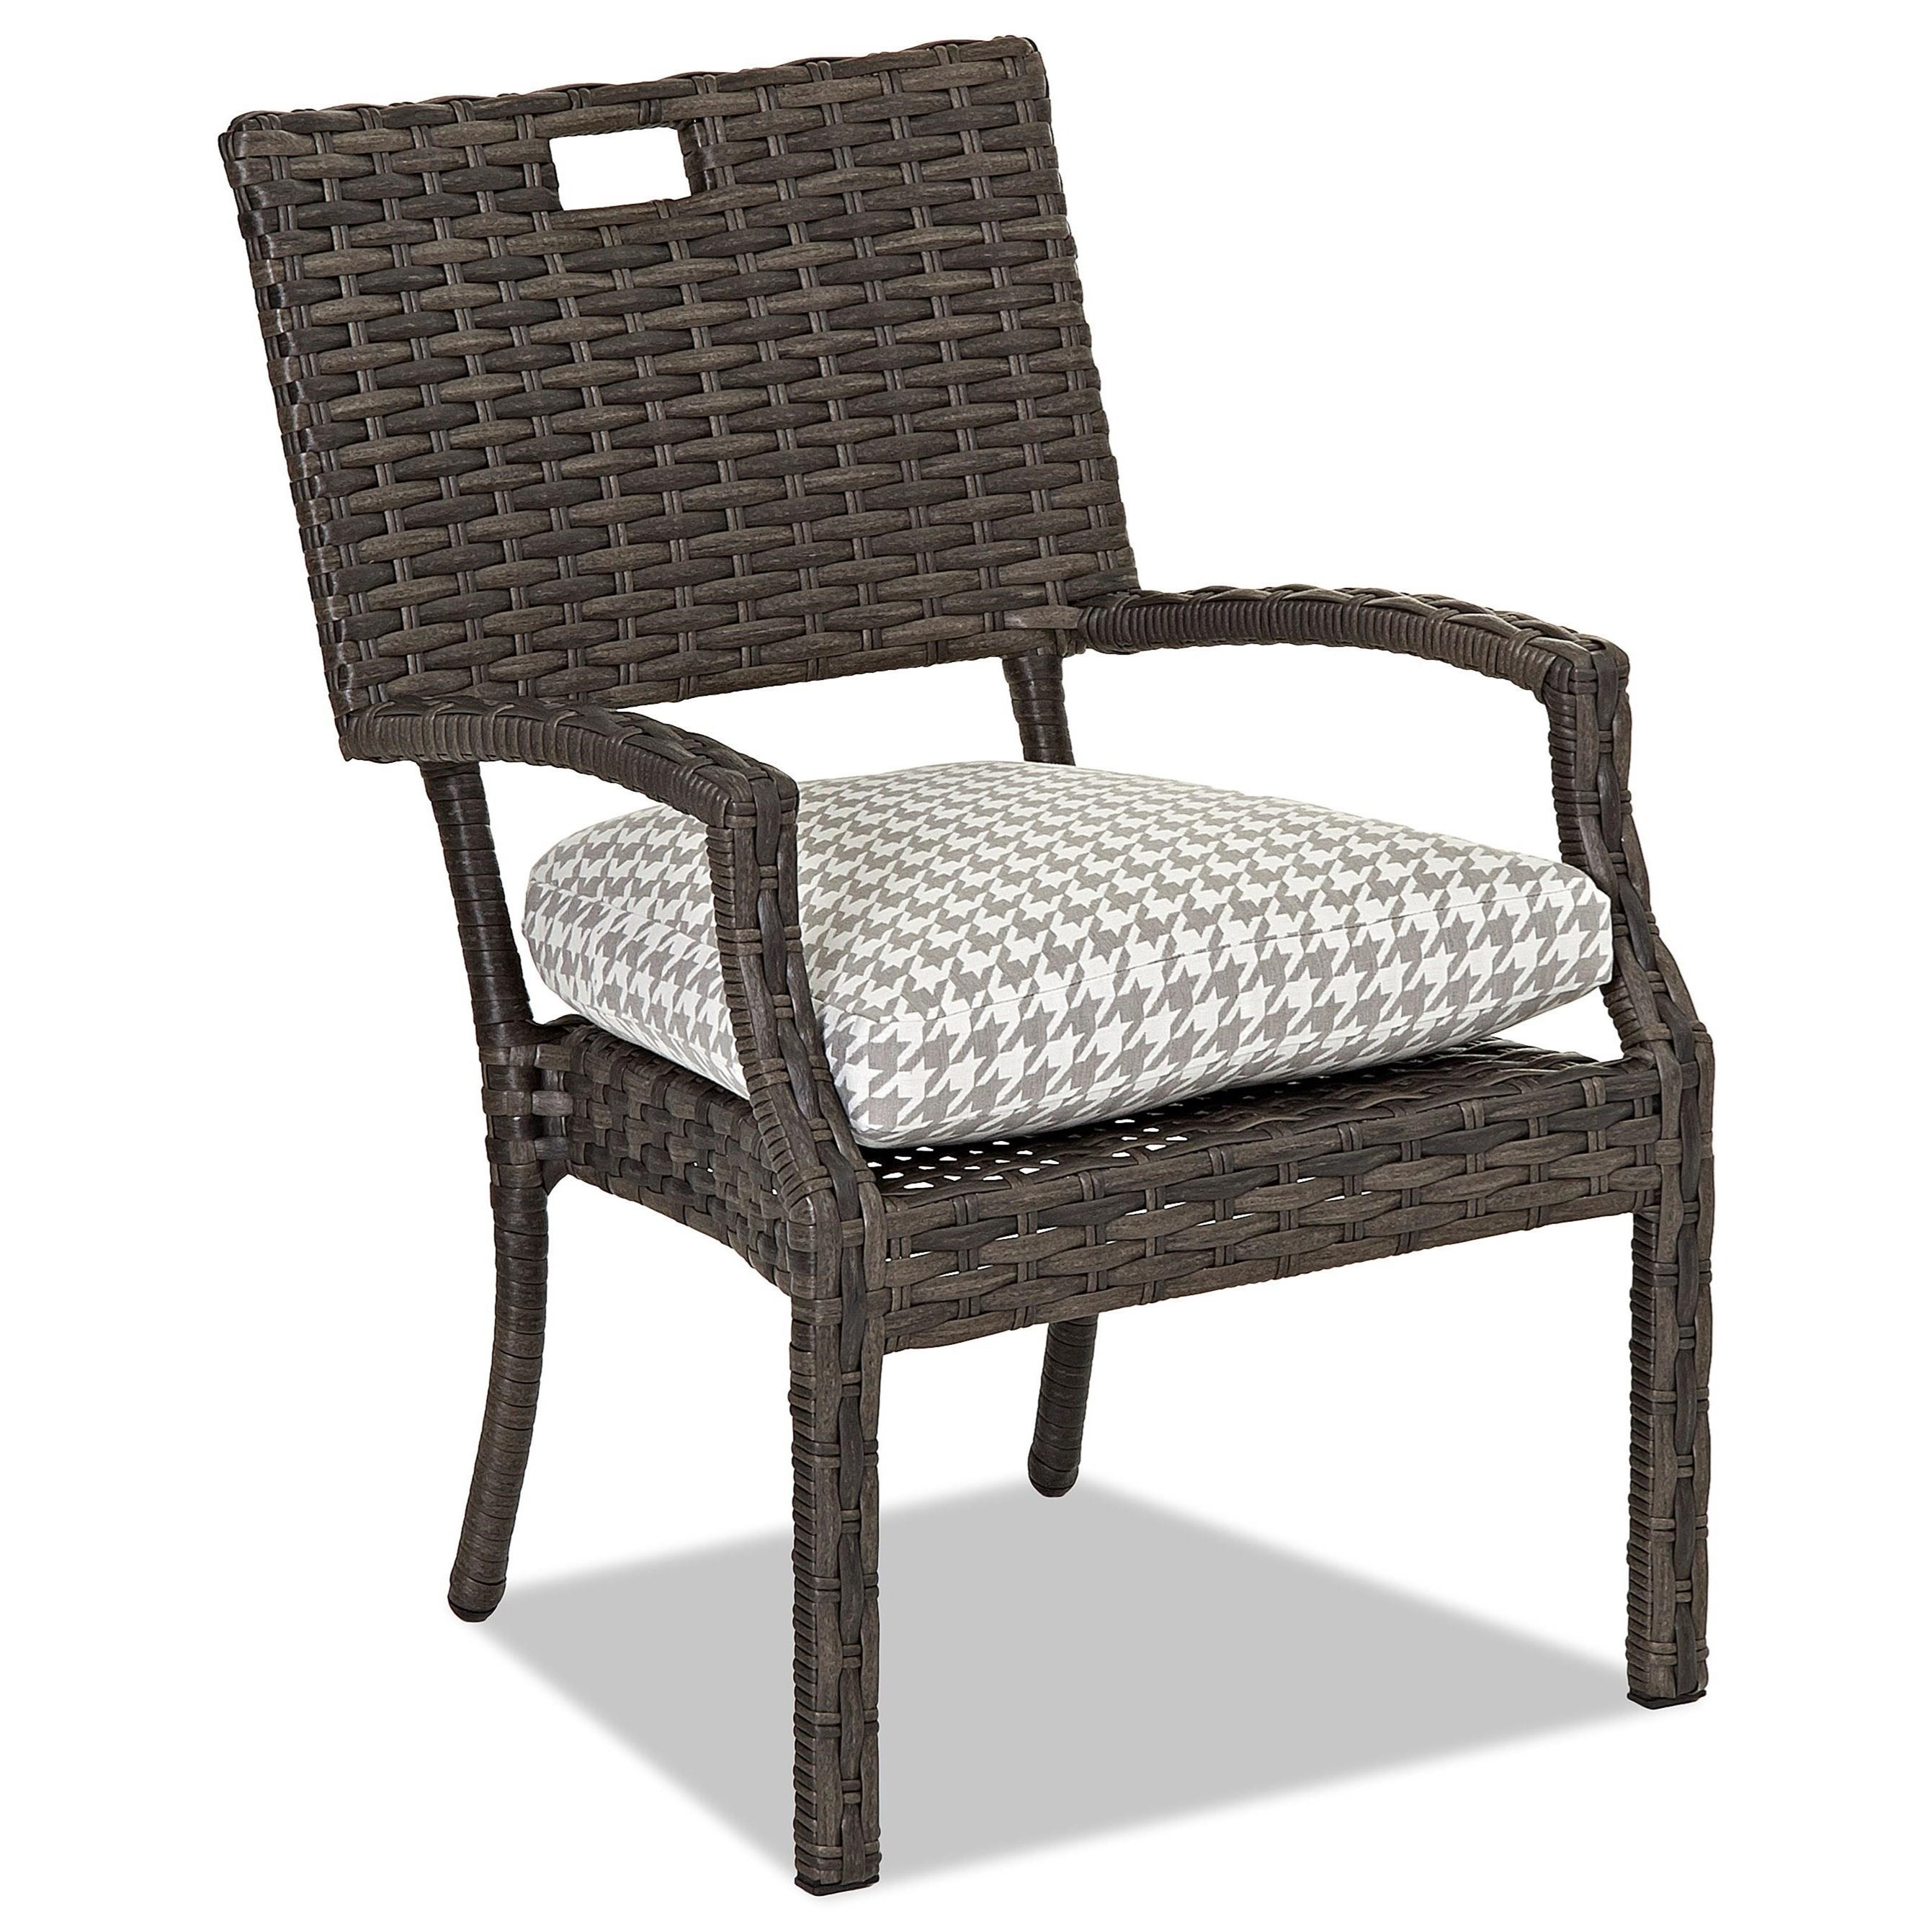 4 Pack Stack Din Chair w/ Drainable Cushion